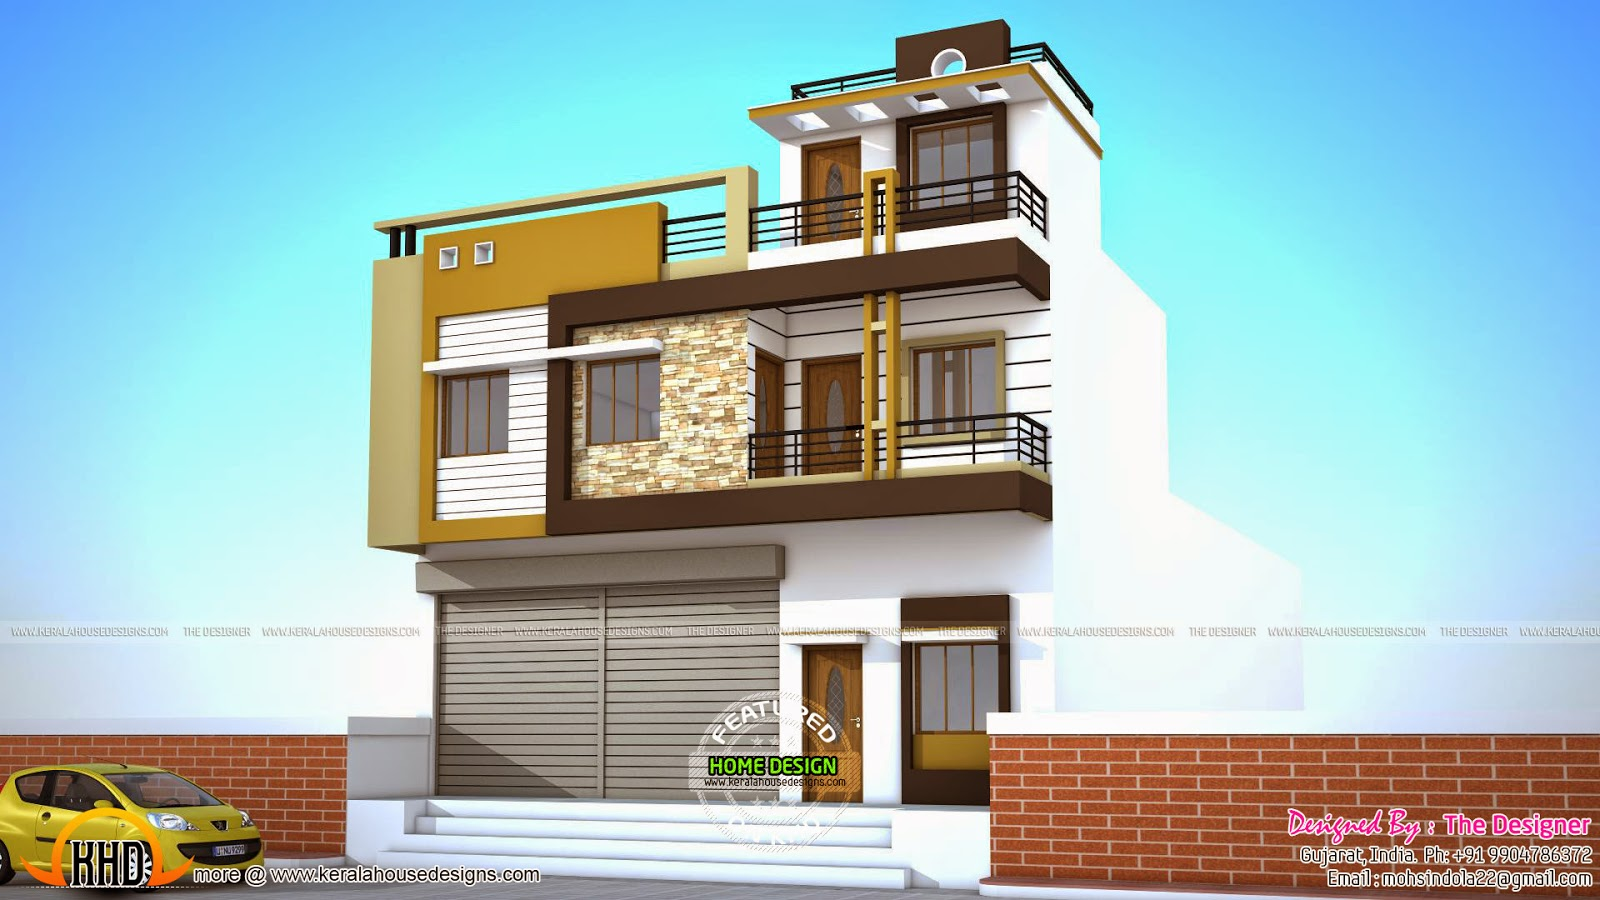 2 house plans with shops on ground floor - Kerala home ...